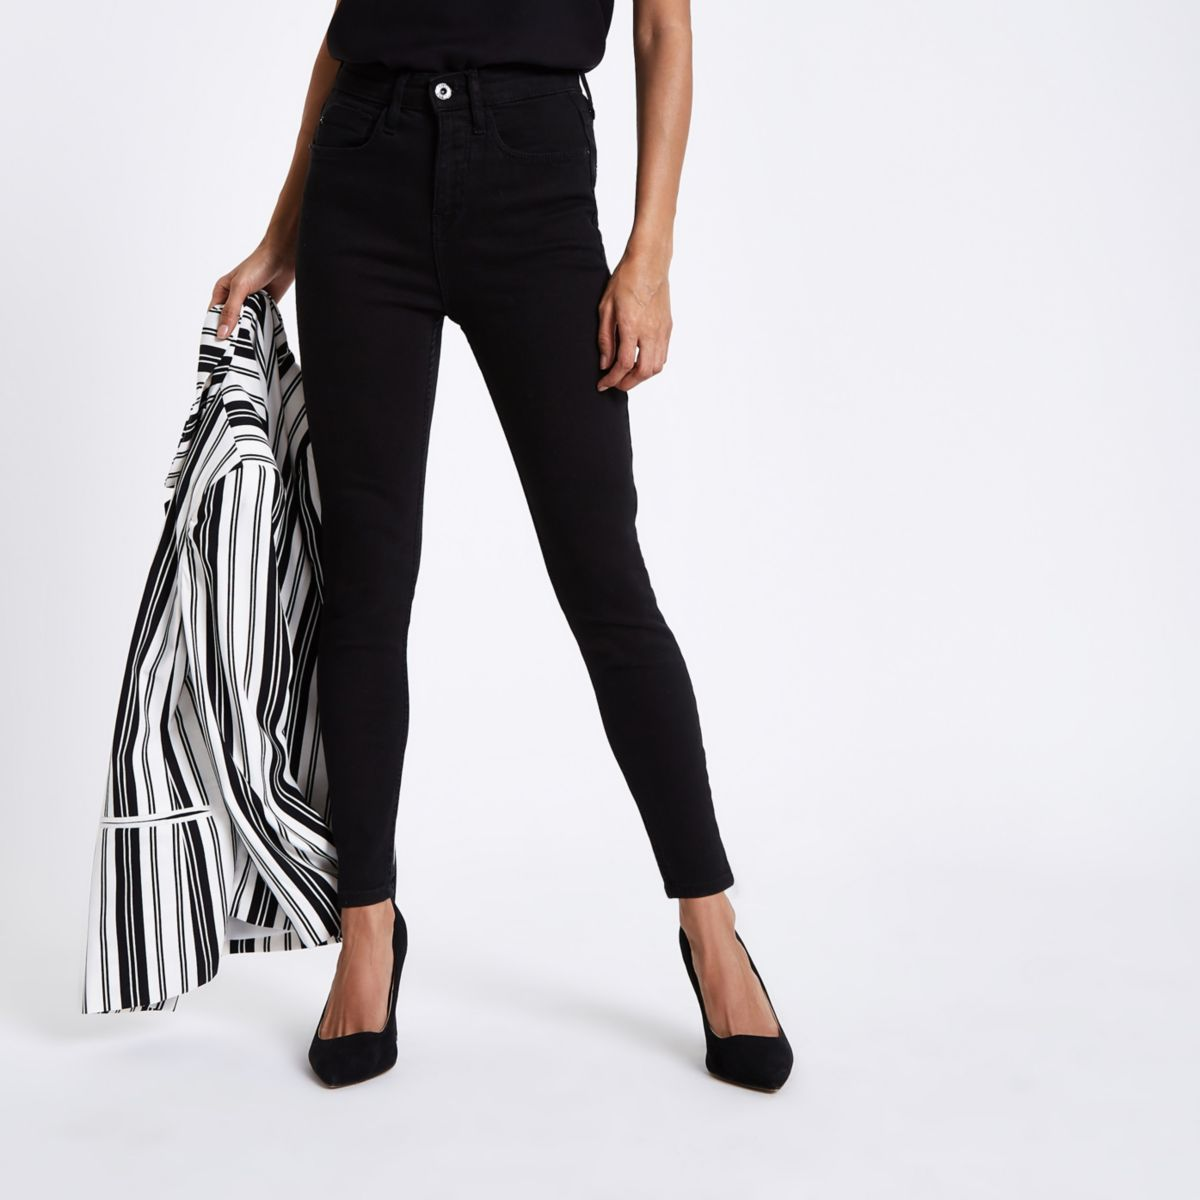 Petite black Harper high waisted skinny jeans